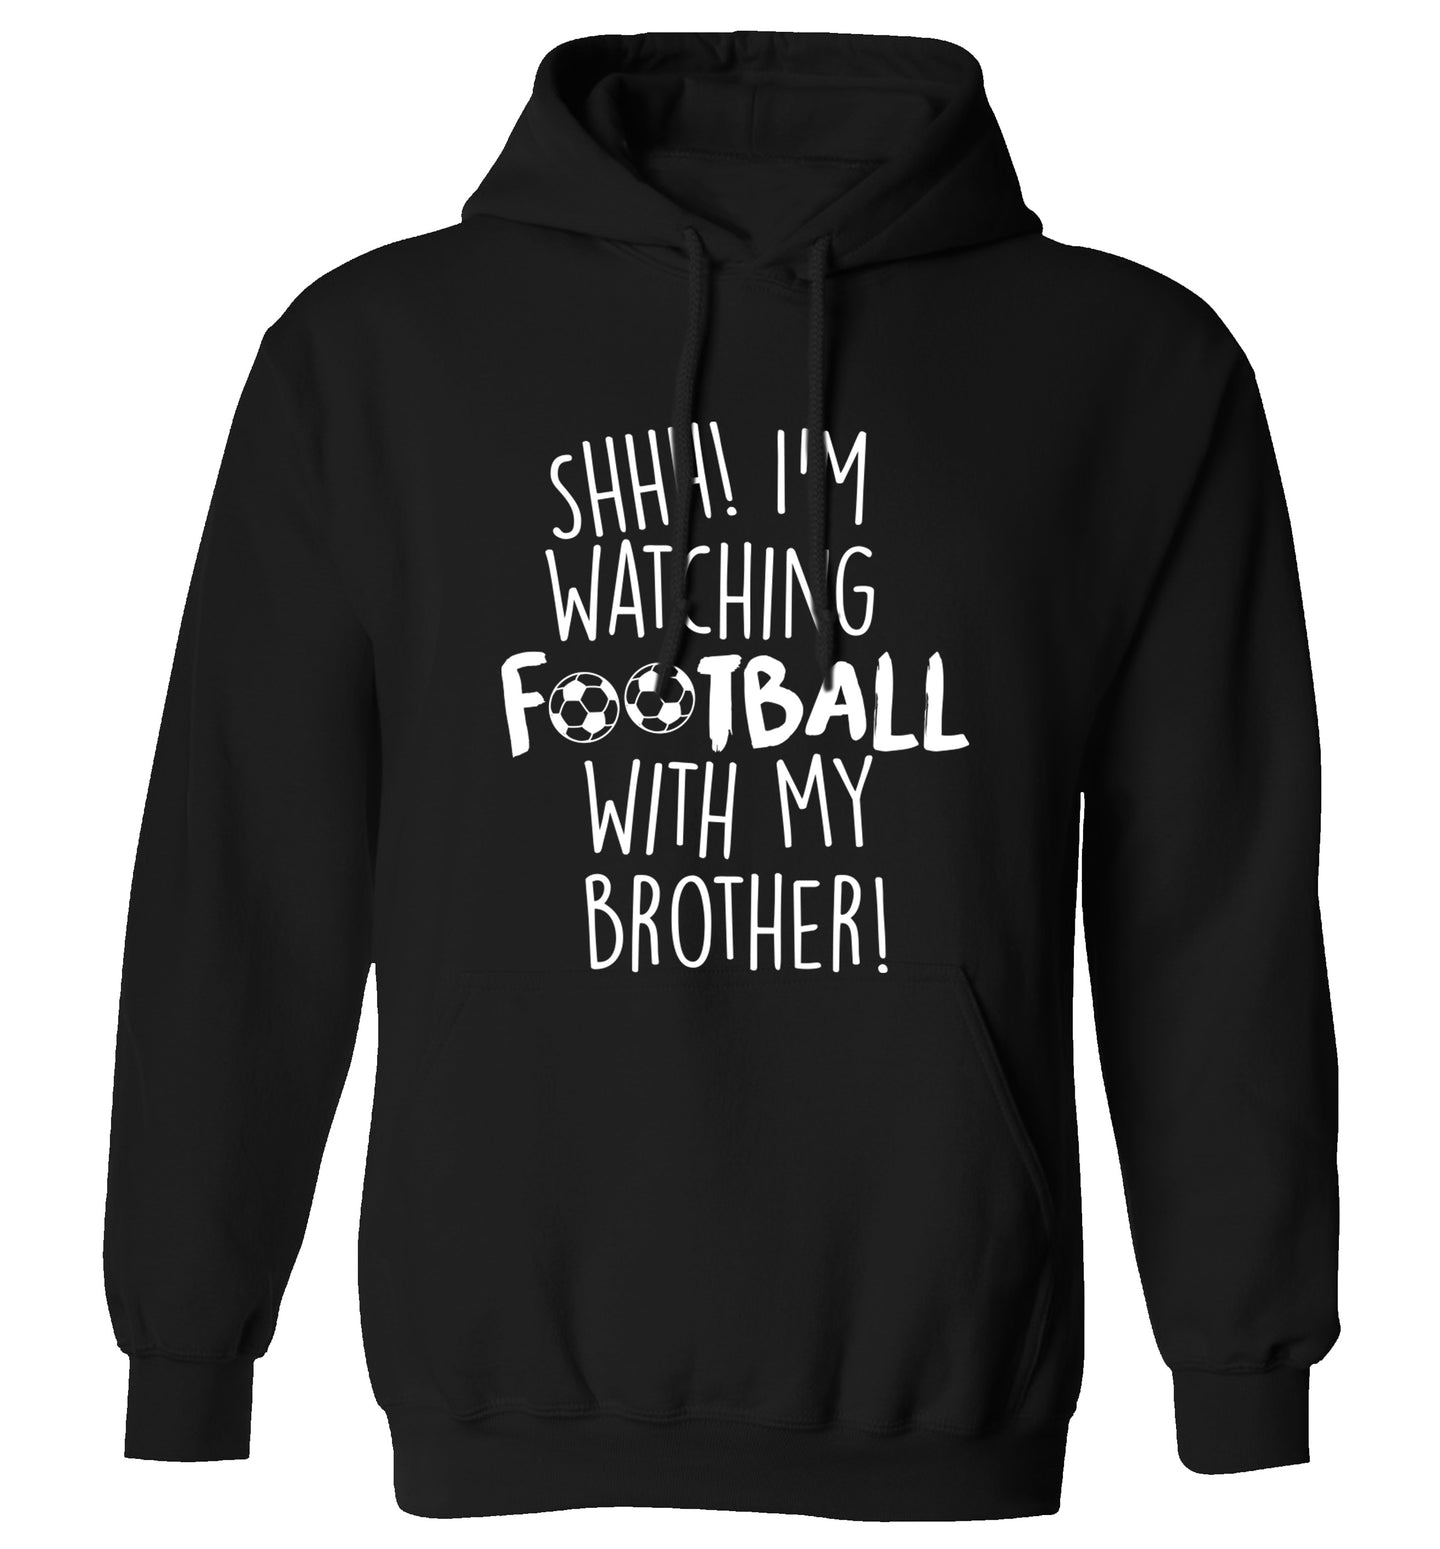 Shhh I'm watching football with my brother adults unisexblack hoodie 2XL